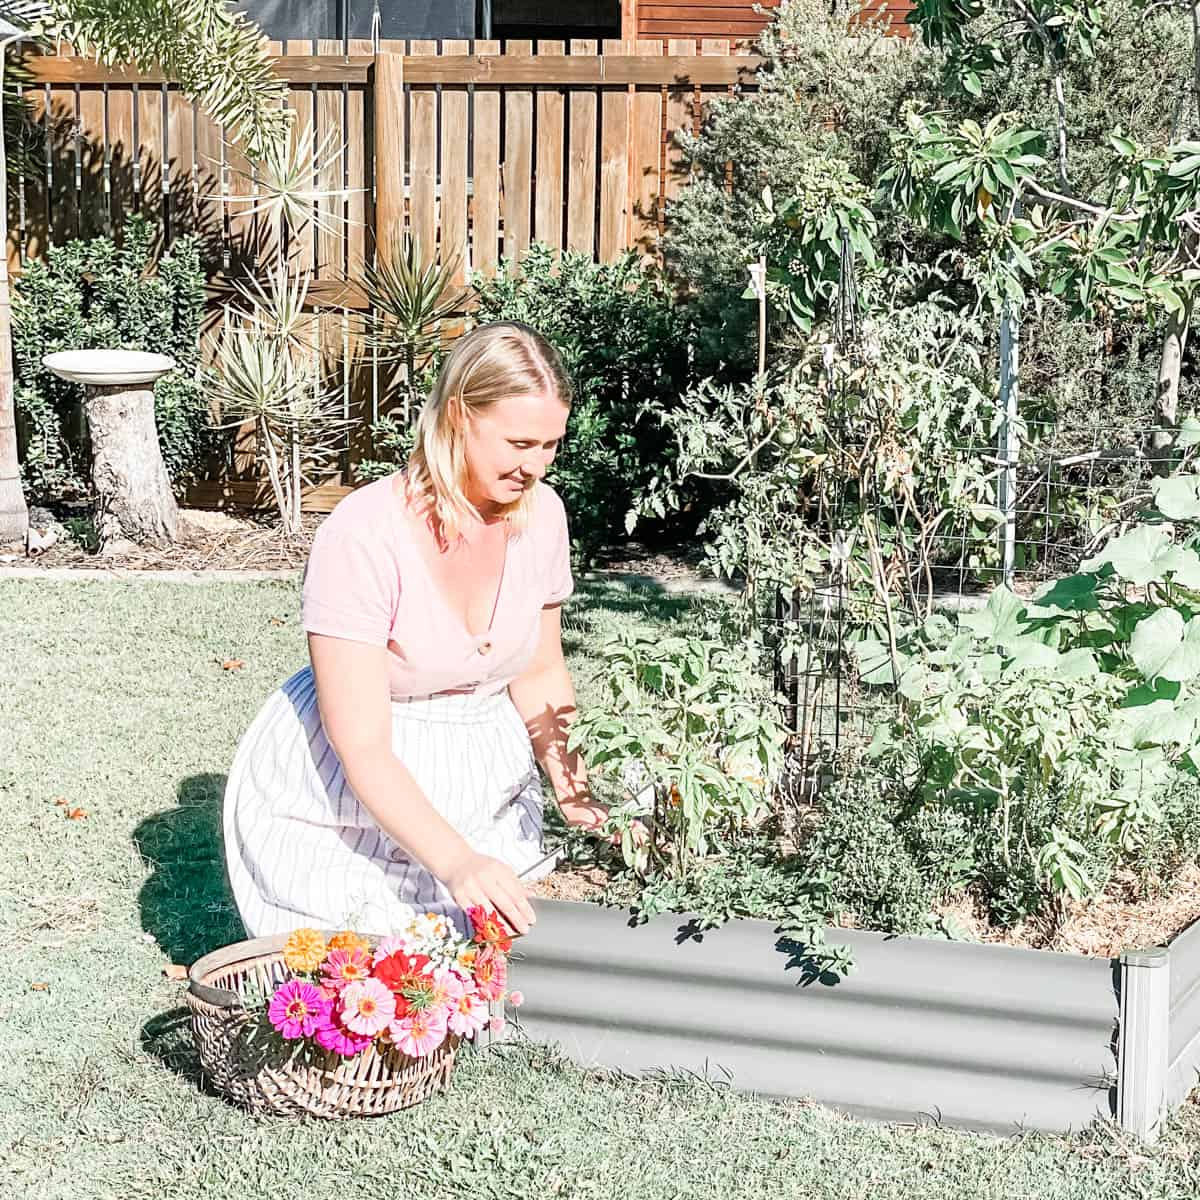 Photo of Emily kneeling by a raised garden bed next to a basket of flowers